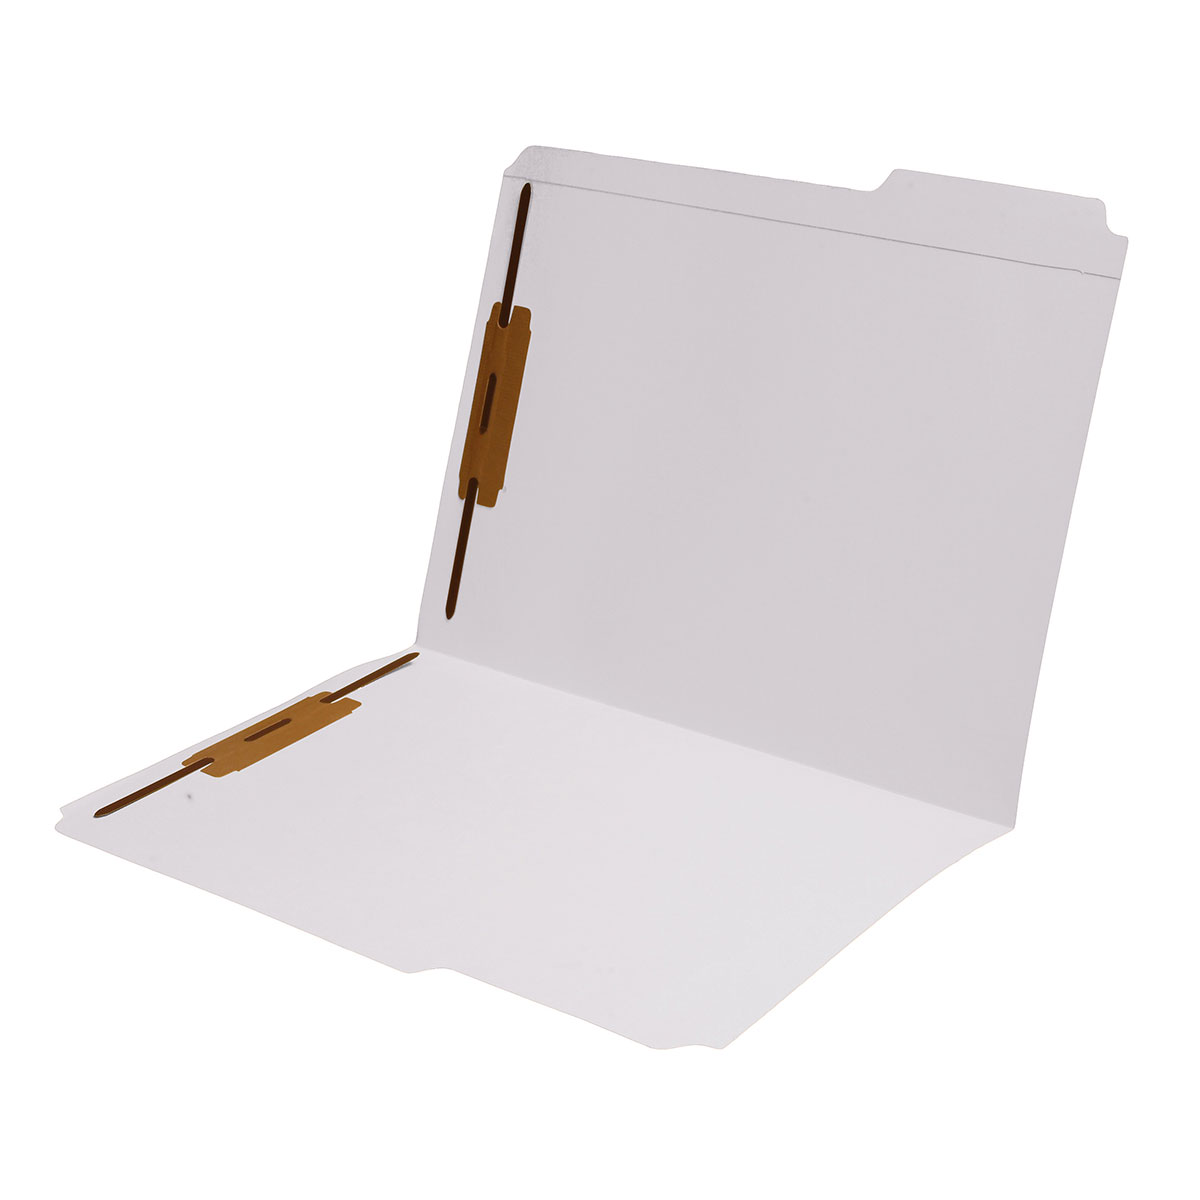 S-9042-WHT - 11 pt White Folders, 1/3 Cut Reinforced Top Tab - Assorted, Letter Size, Fastener Pos #1 and #3 (Box of 50)